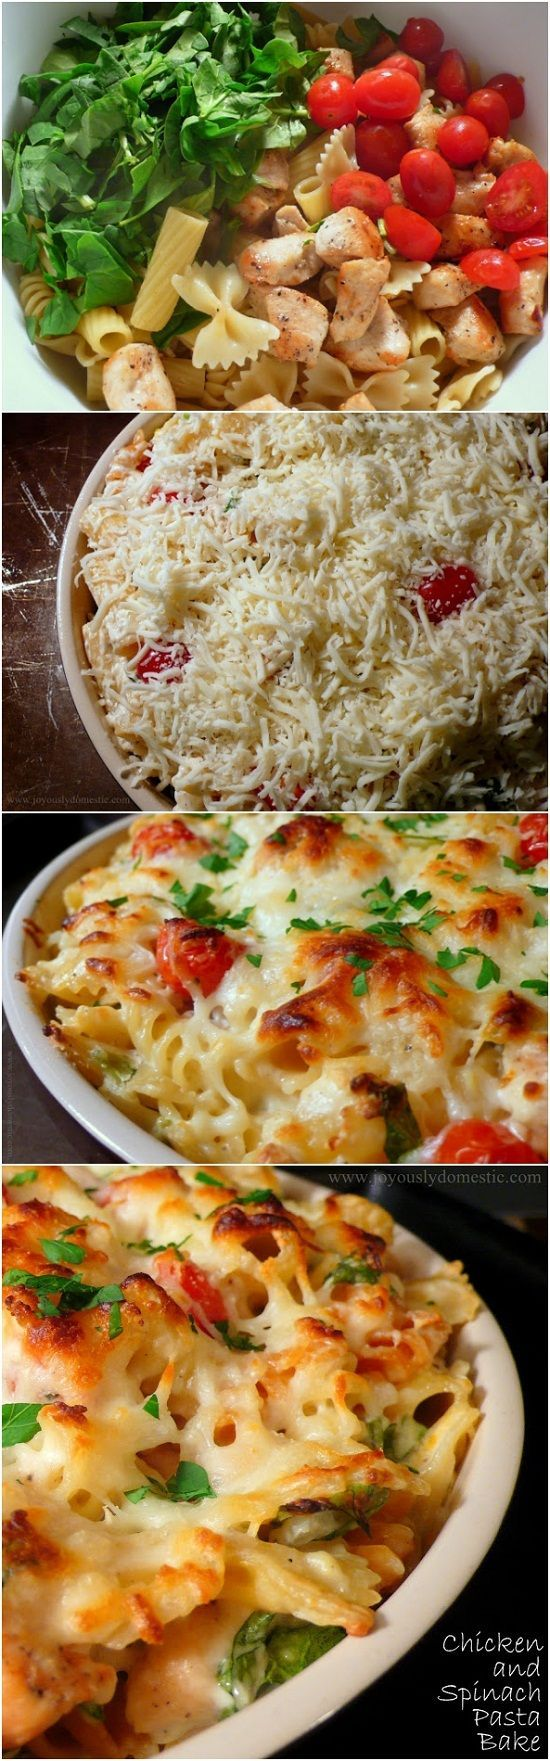 Chicken and Spinach Pasta Bake - fantasticsausage